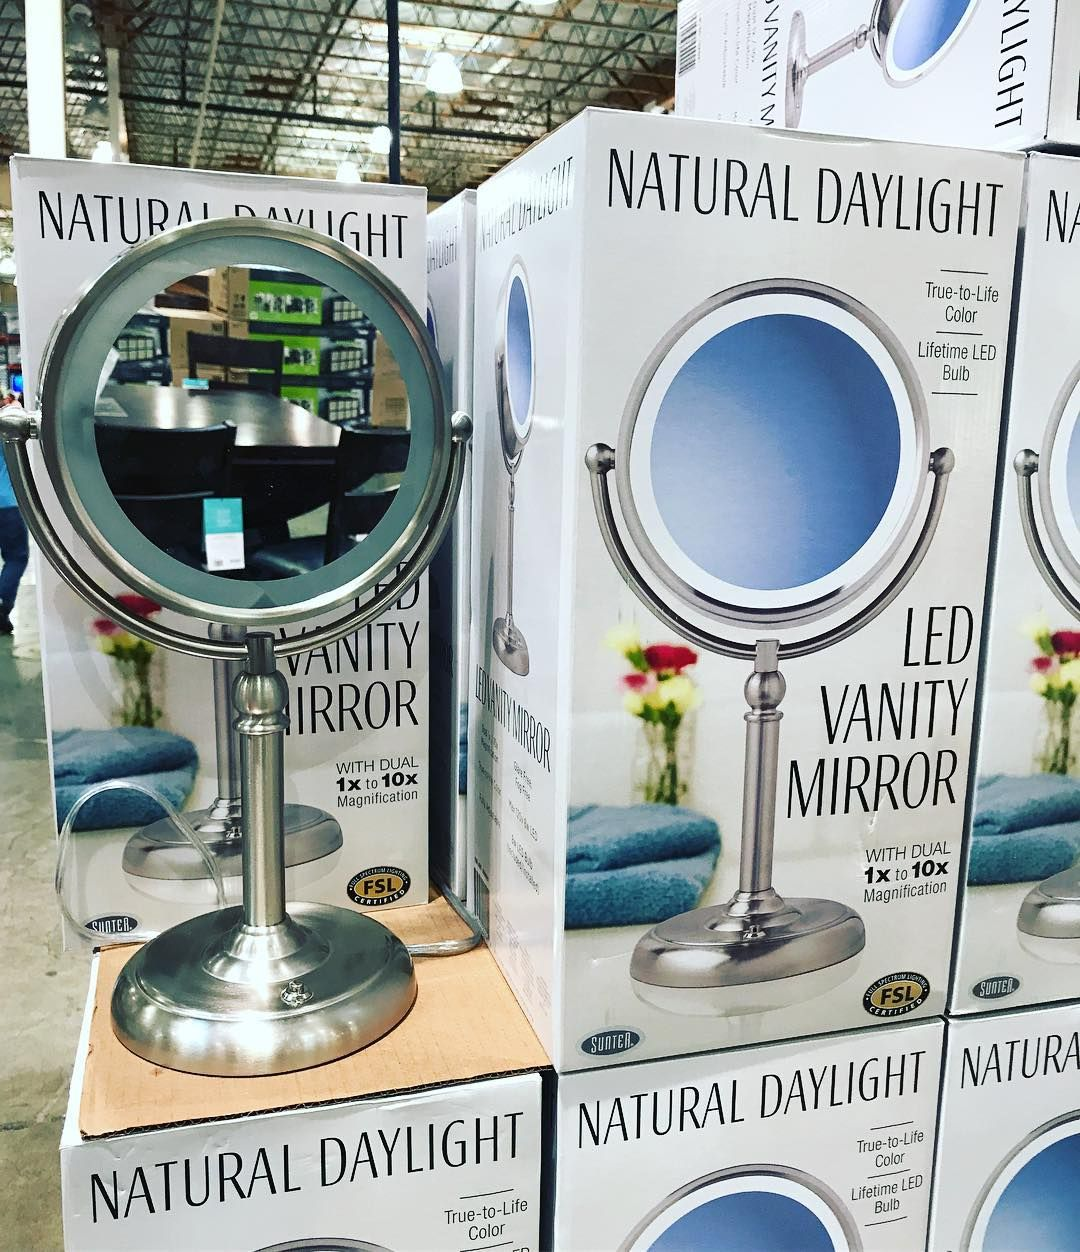 Perfect Makeup Mirror Right Now It S 5 Off Now Only 14 99 Get This Led Vanity Mirror Costco Costcodeals Memberssavin Mirror Led Mirror Led Vanity